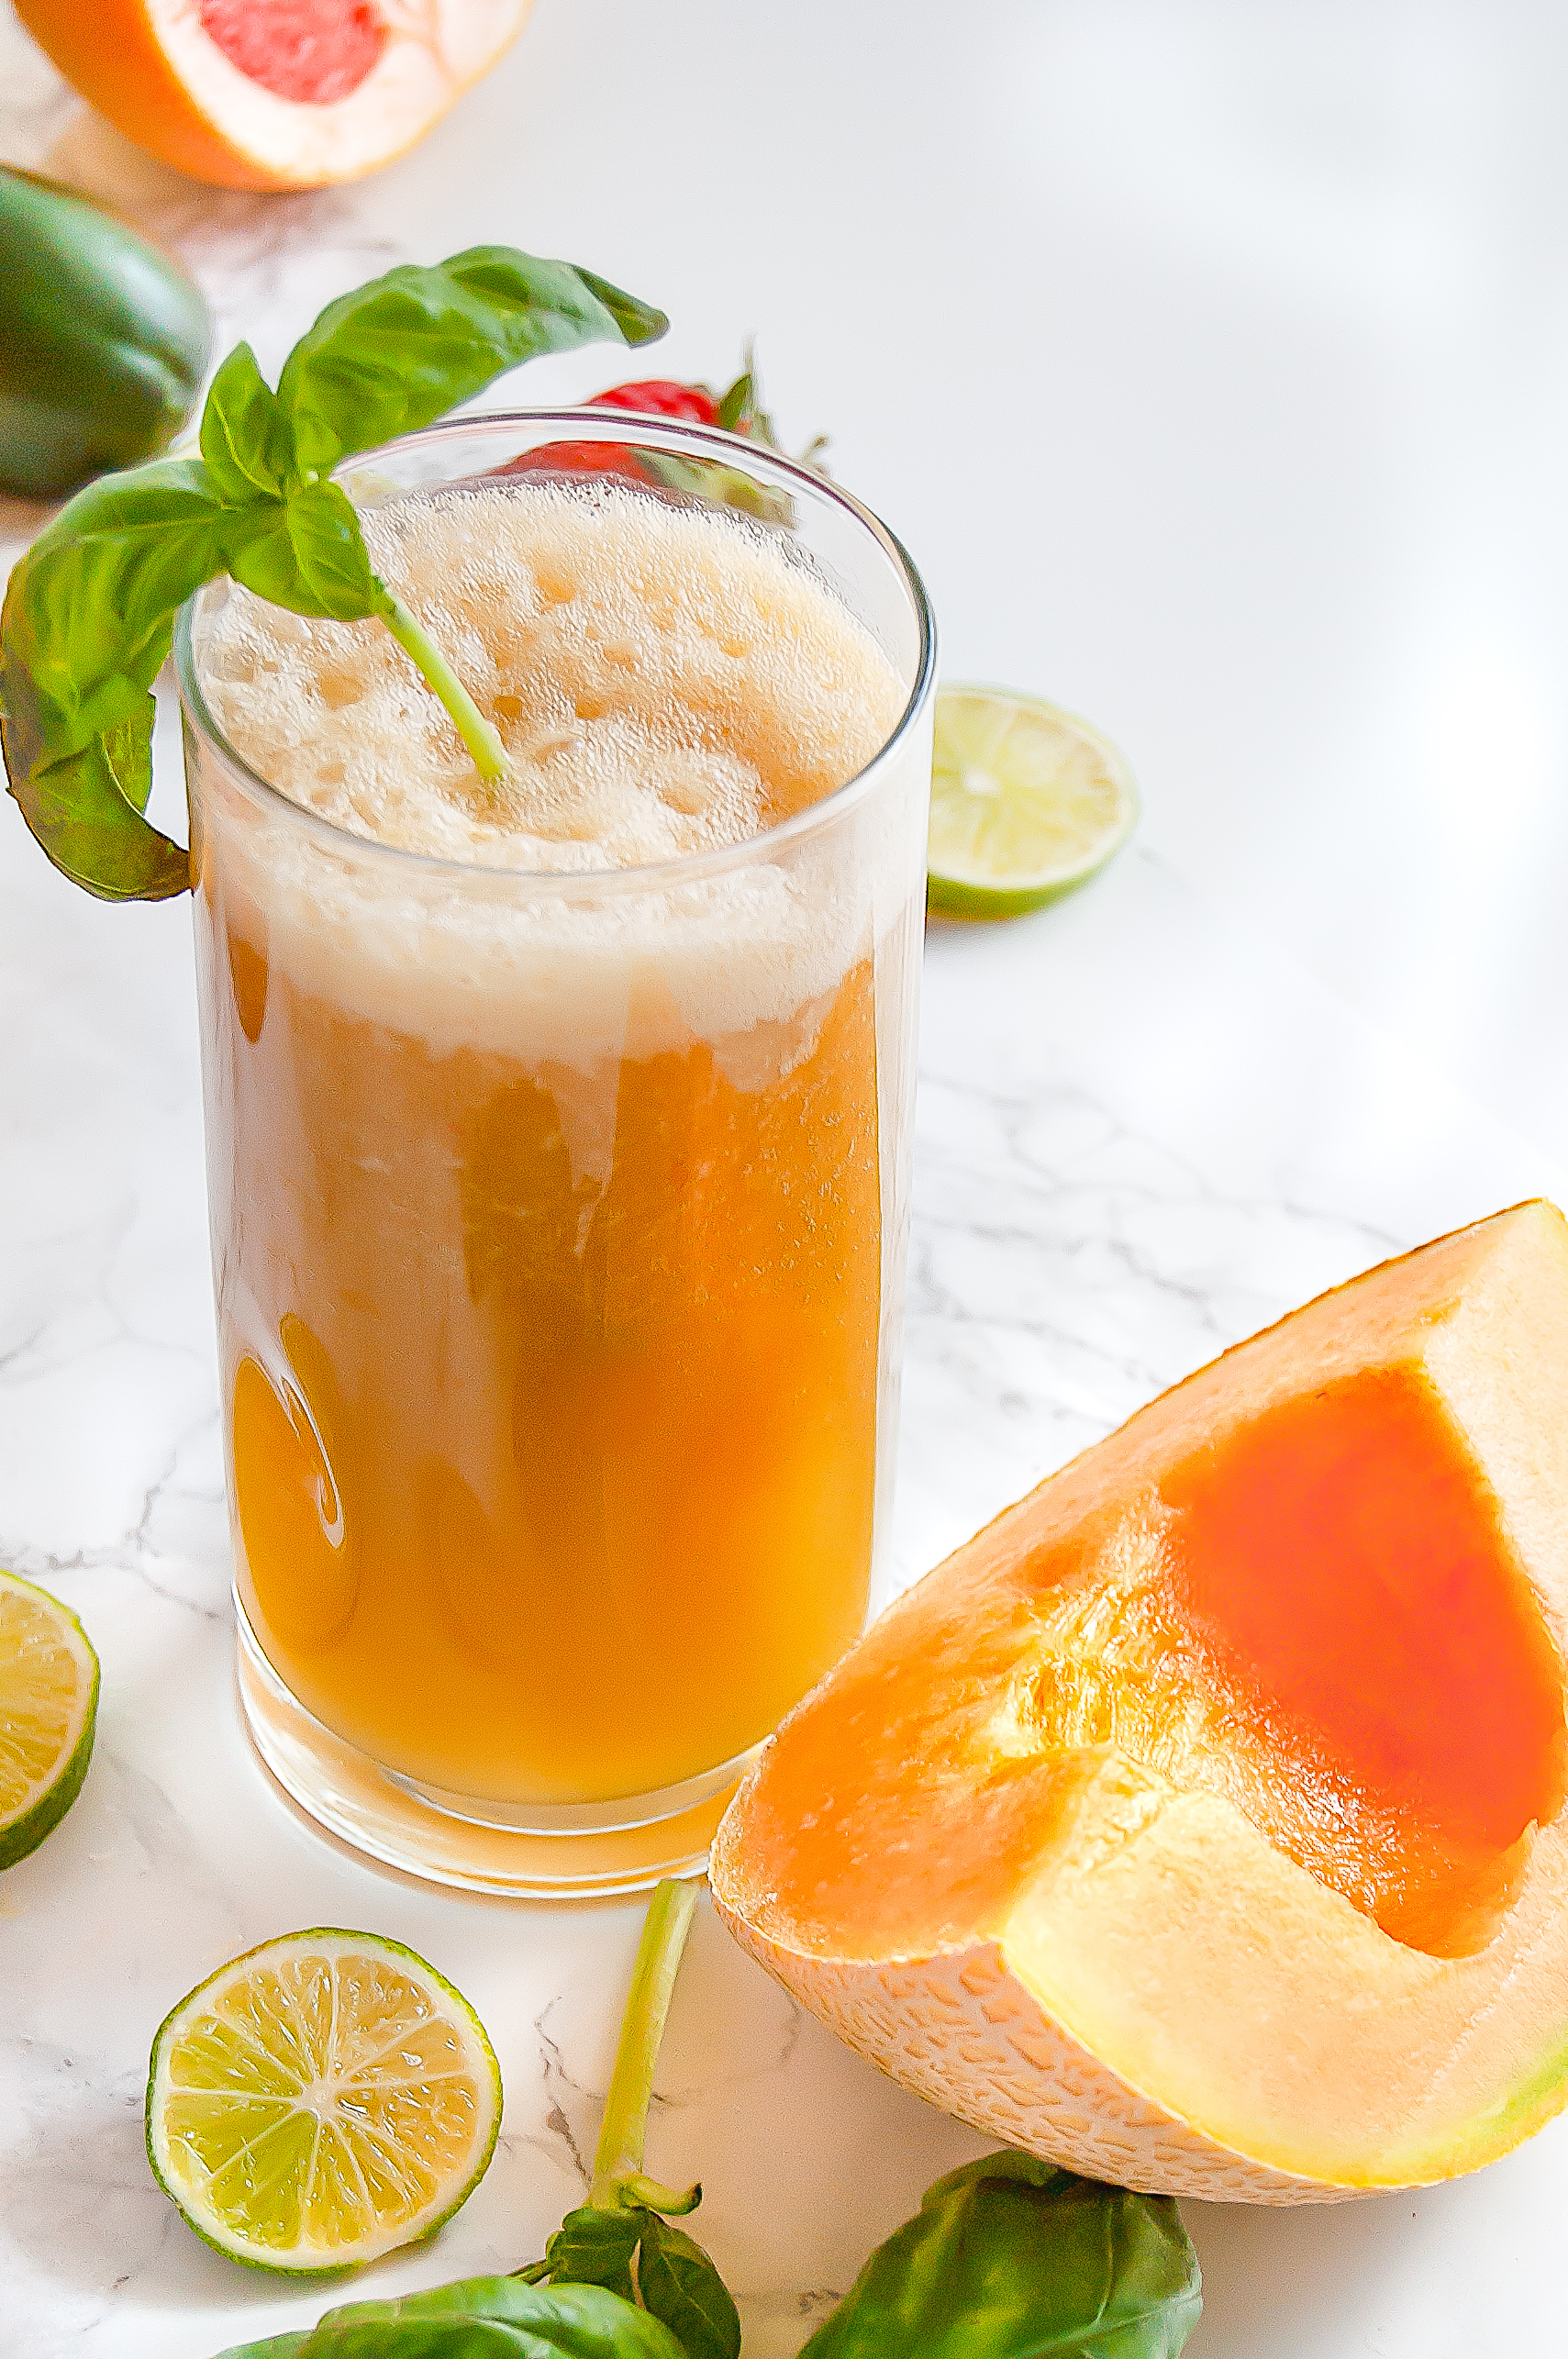 Tall glass of cantaloupe basil agua fresca next to a slice of cantaloupe.